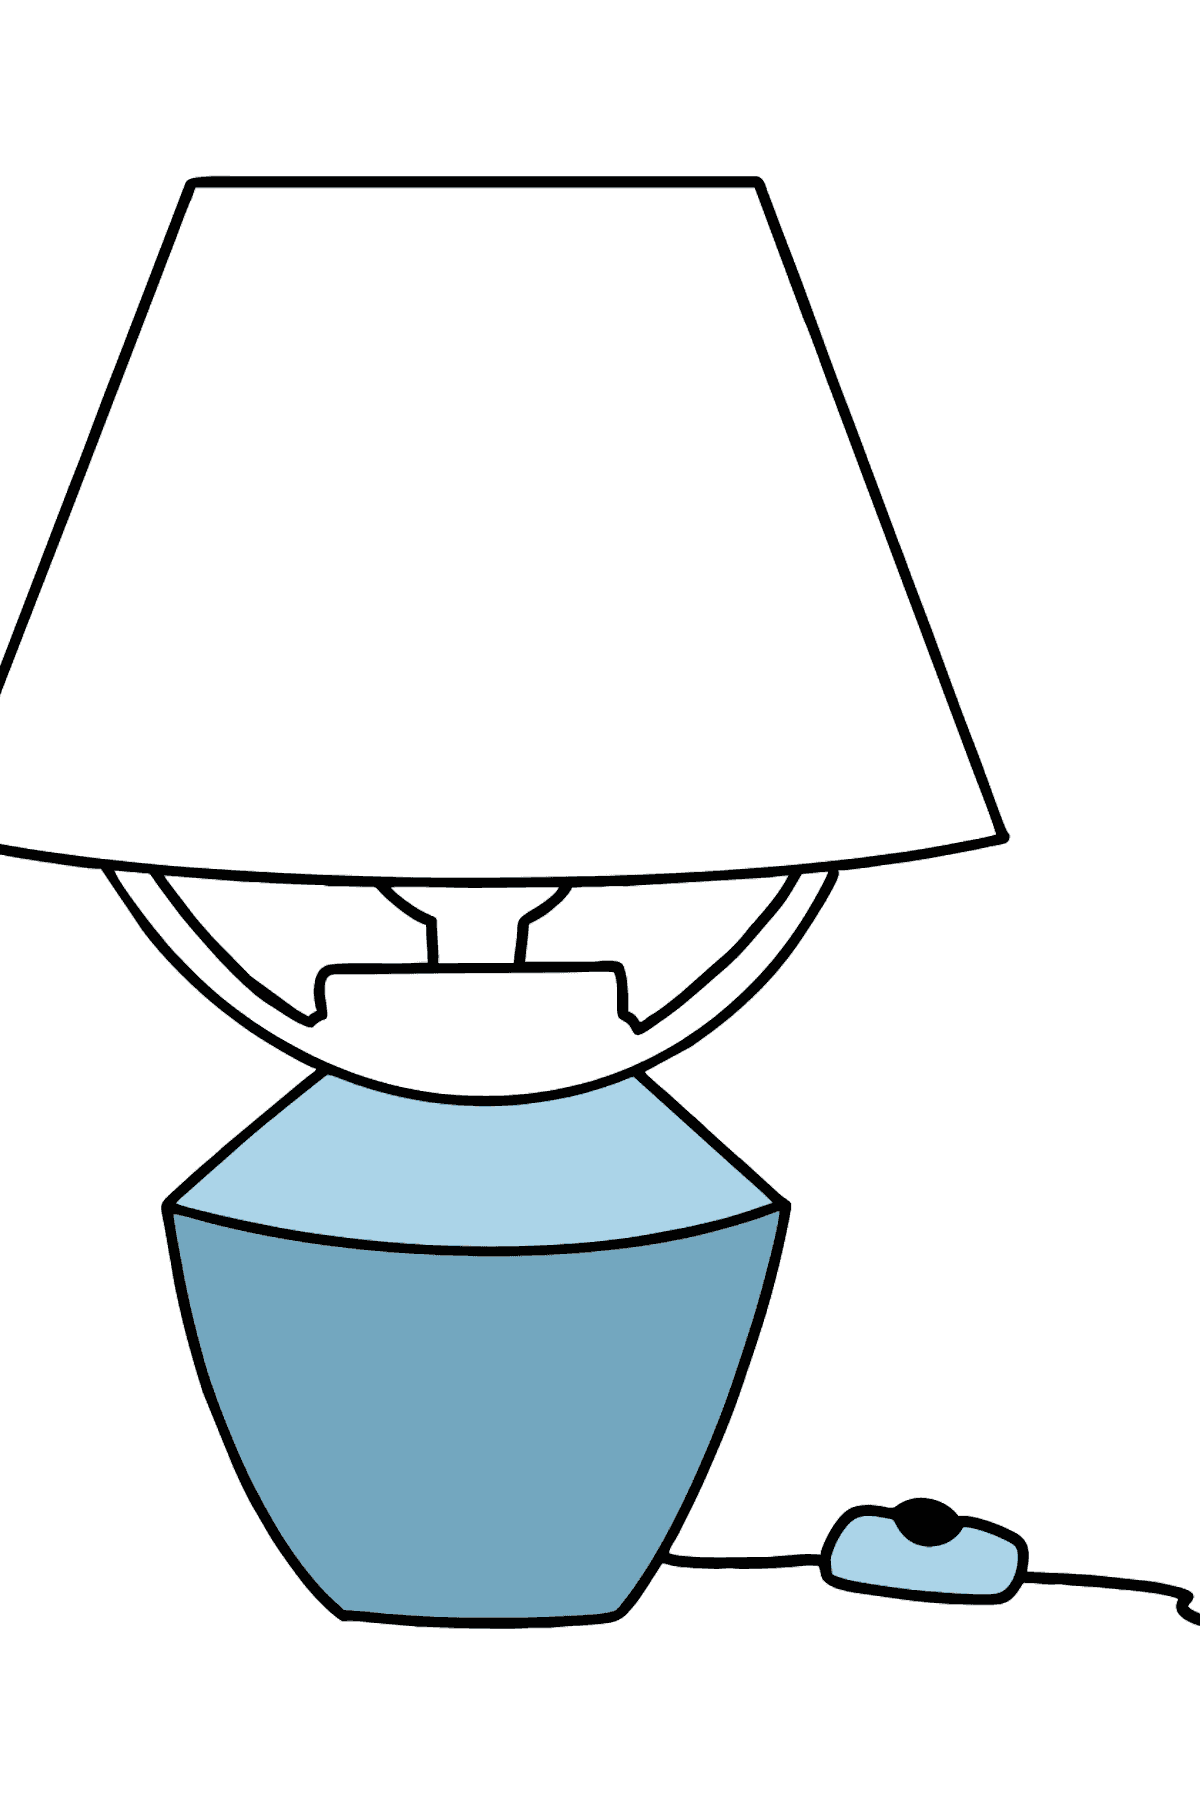 Bedside Lamp coloring page - Coloring Pages for Kids